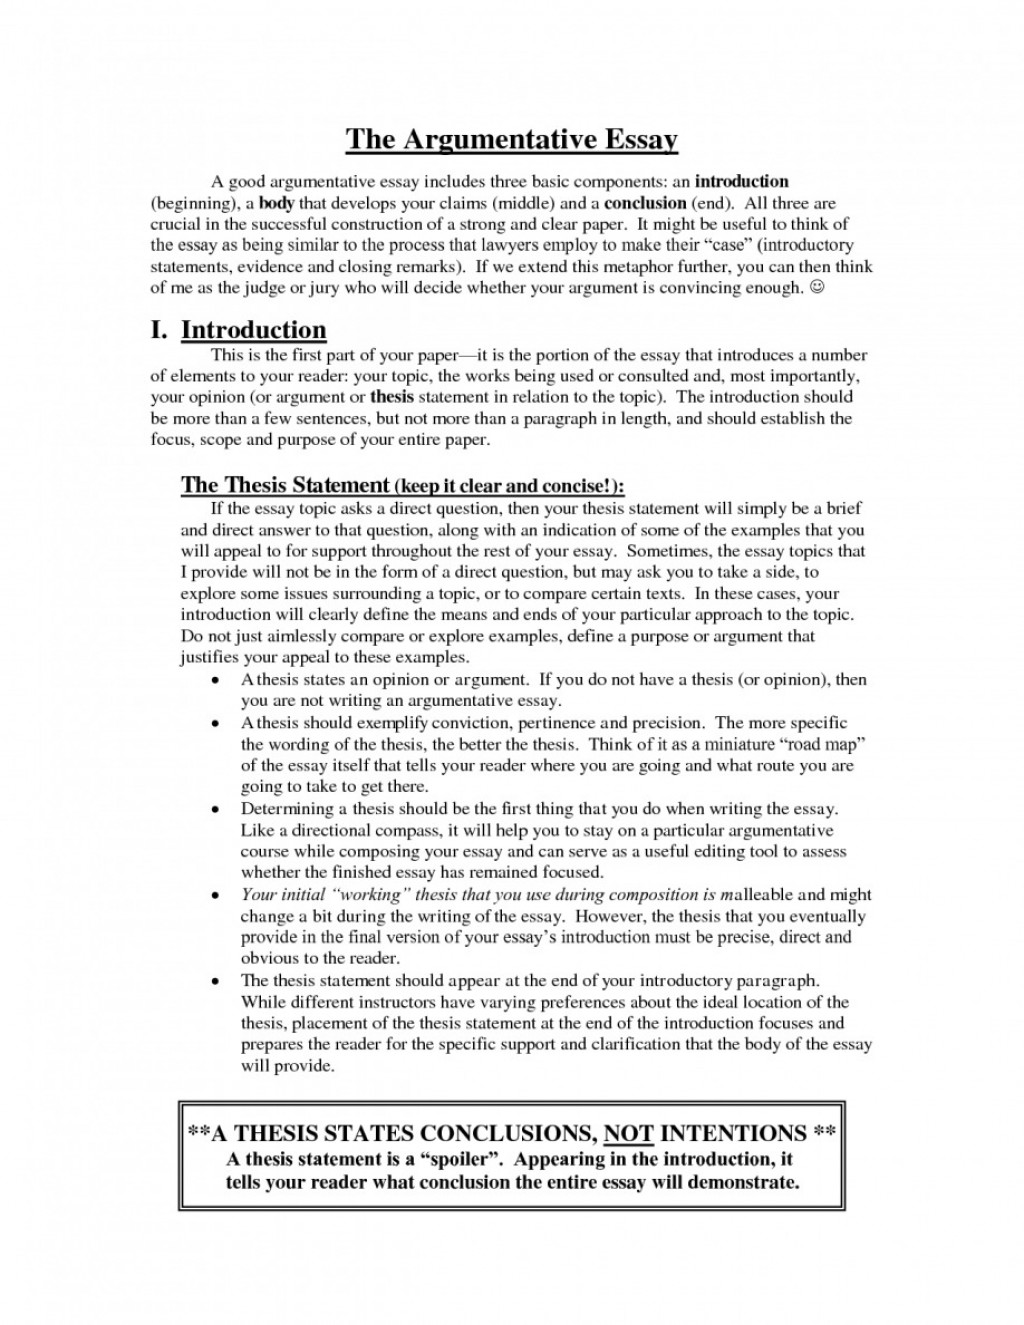 003 How To Write An Argumentative Essay Introduction Persuasive Paragraph Example Examples And Image Gallery Pertaining Sample About Bullying Format Smoking Unique For Pdf Large